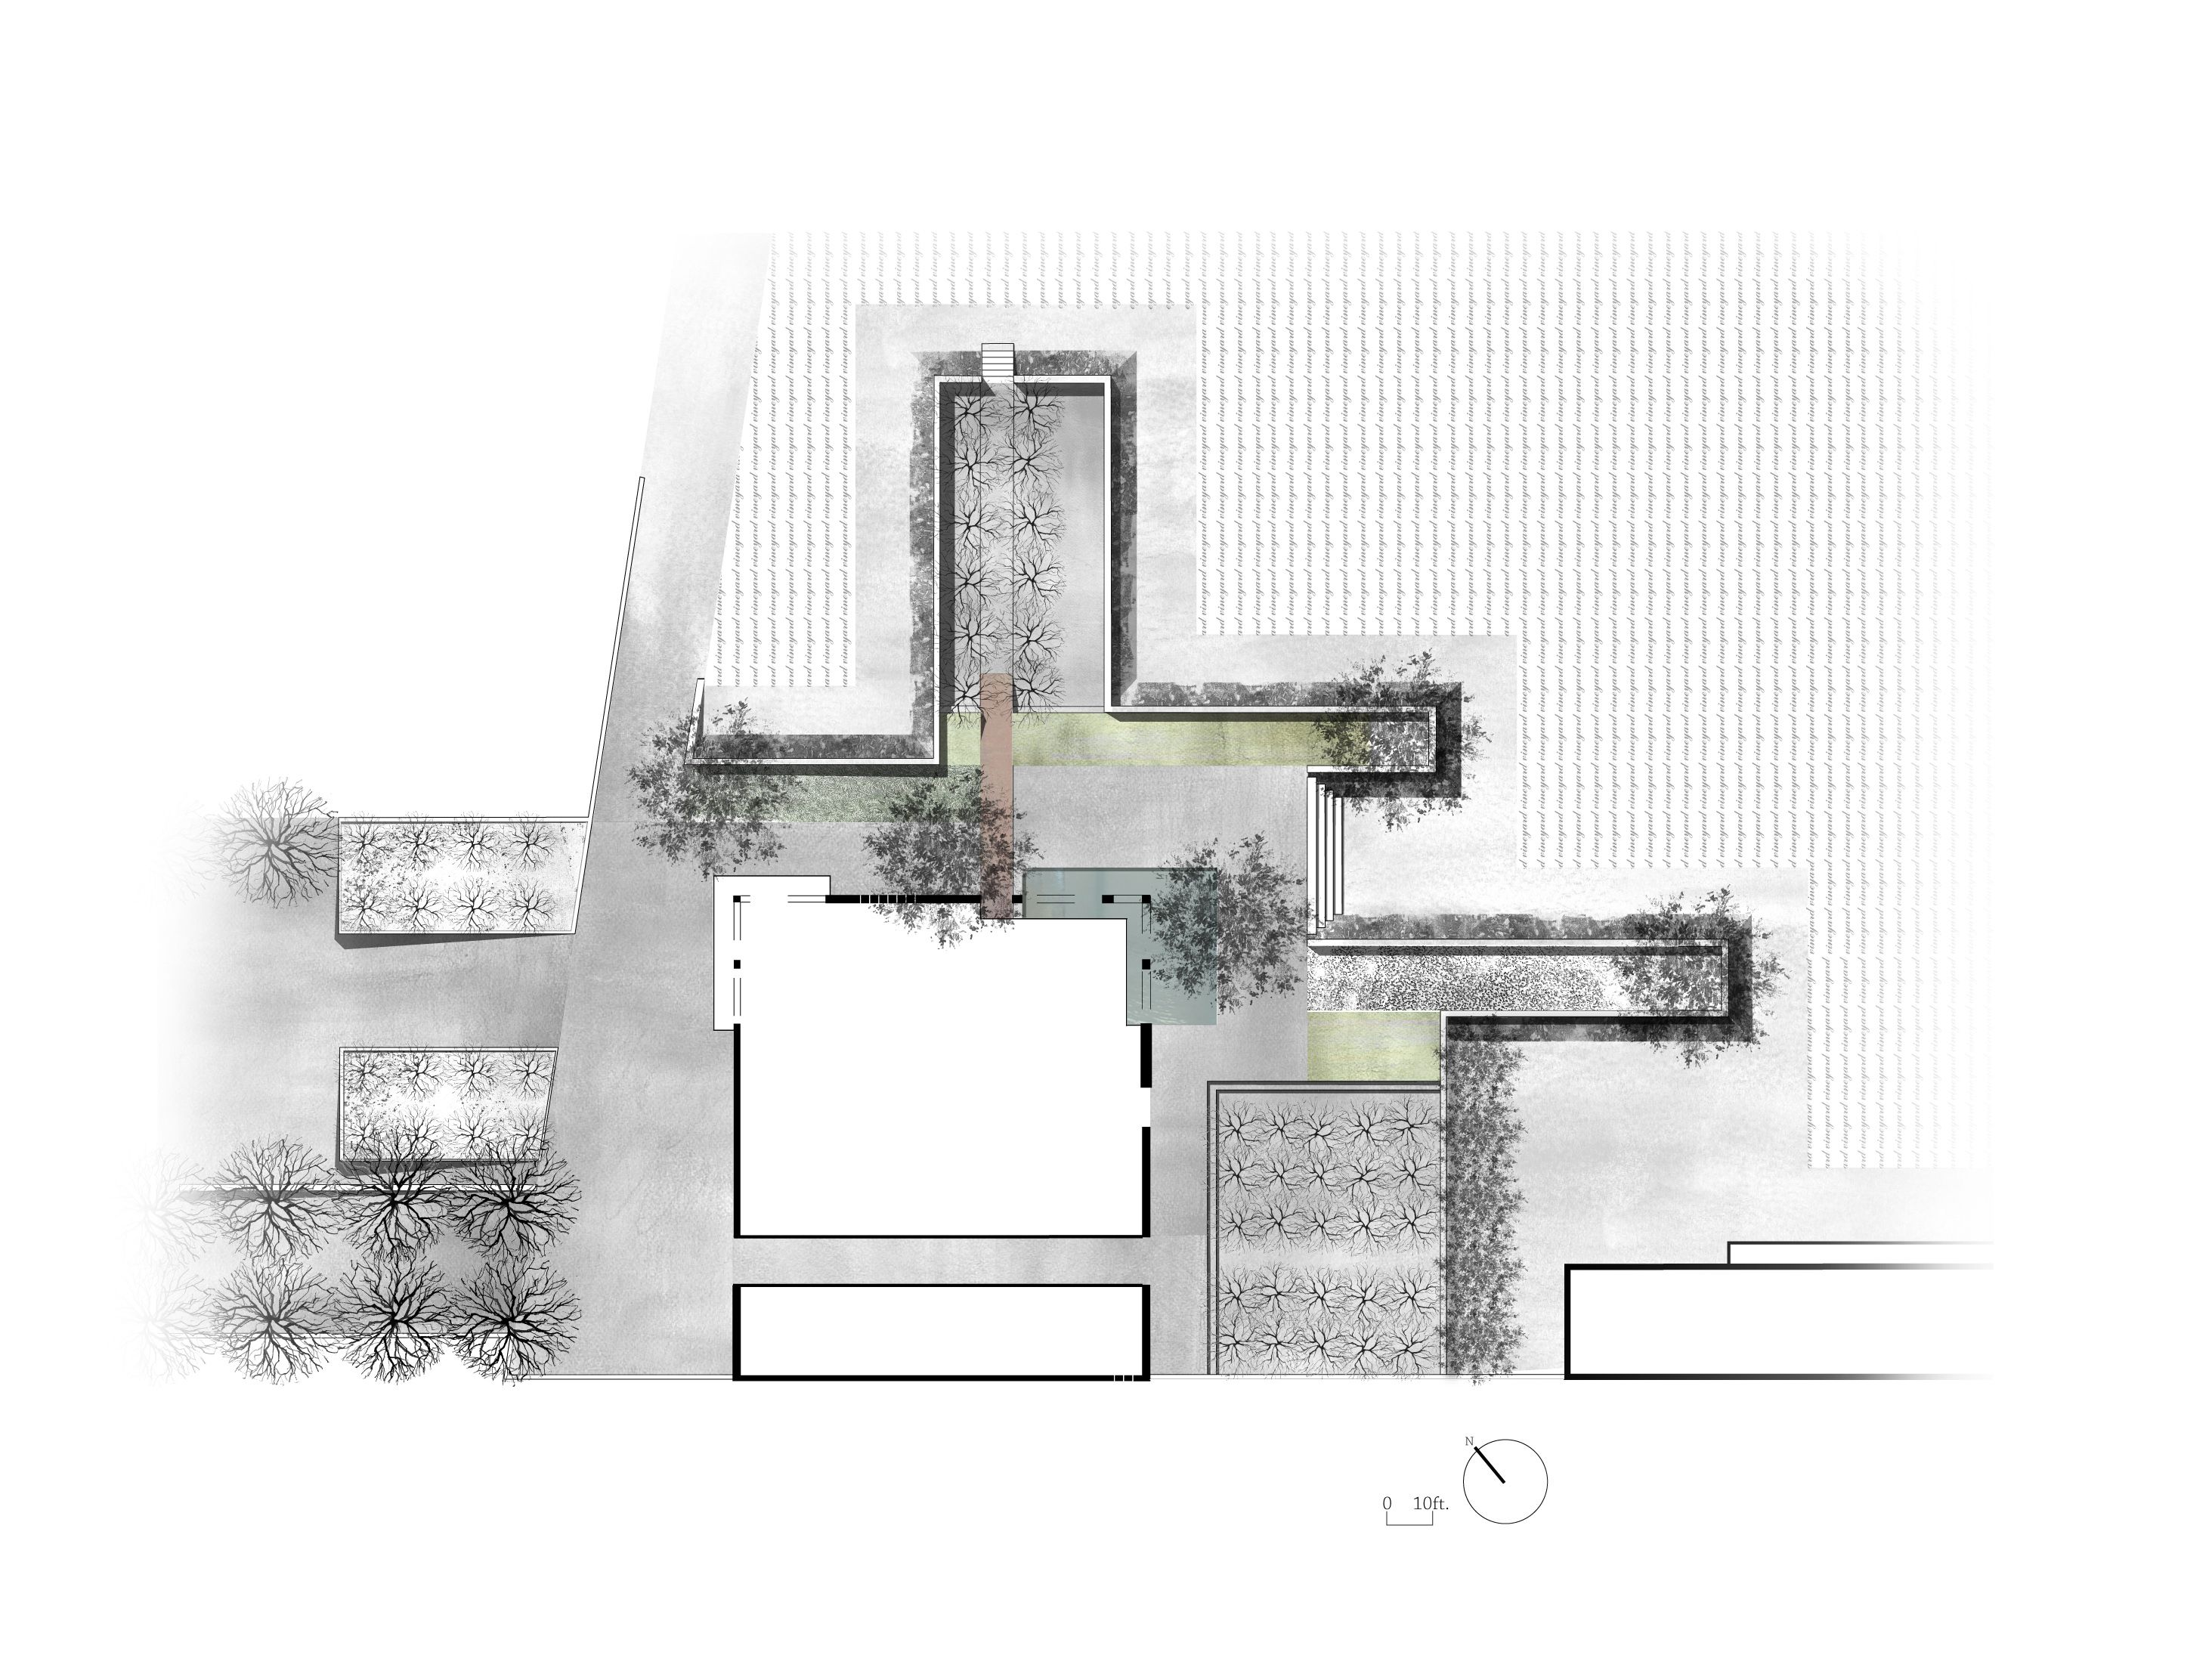 Andrea Cochran Asla Architecture Drawings Paving Pattern Amazing Architecture